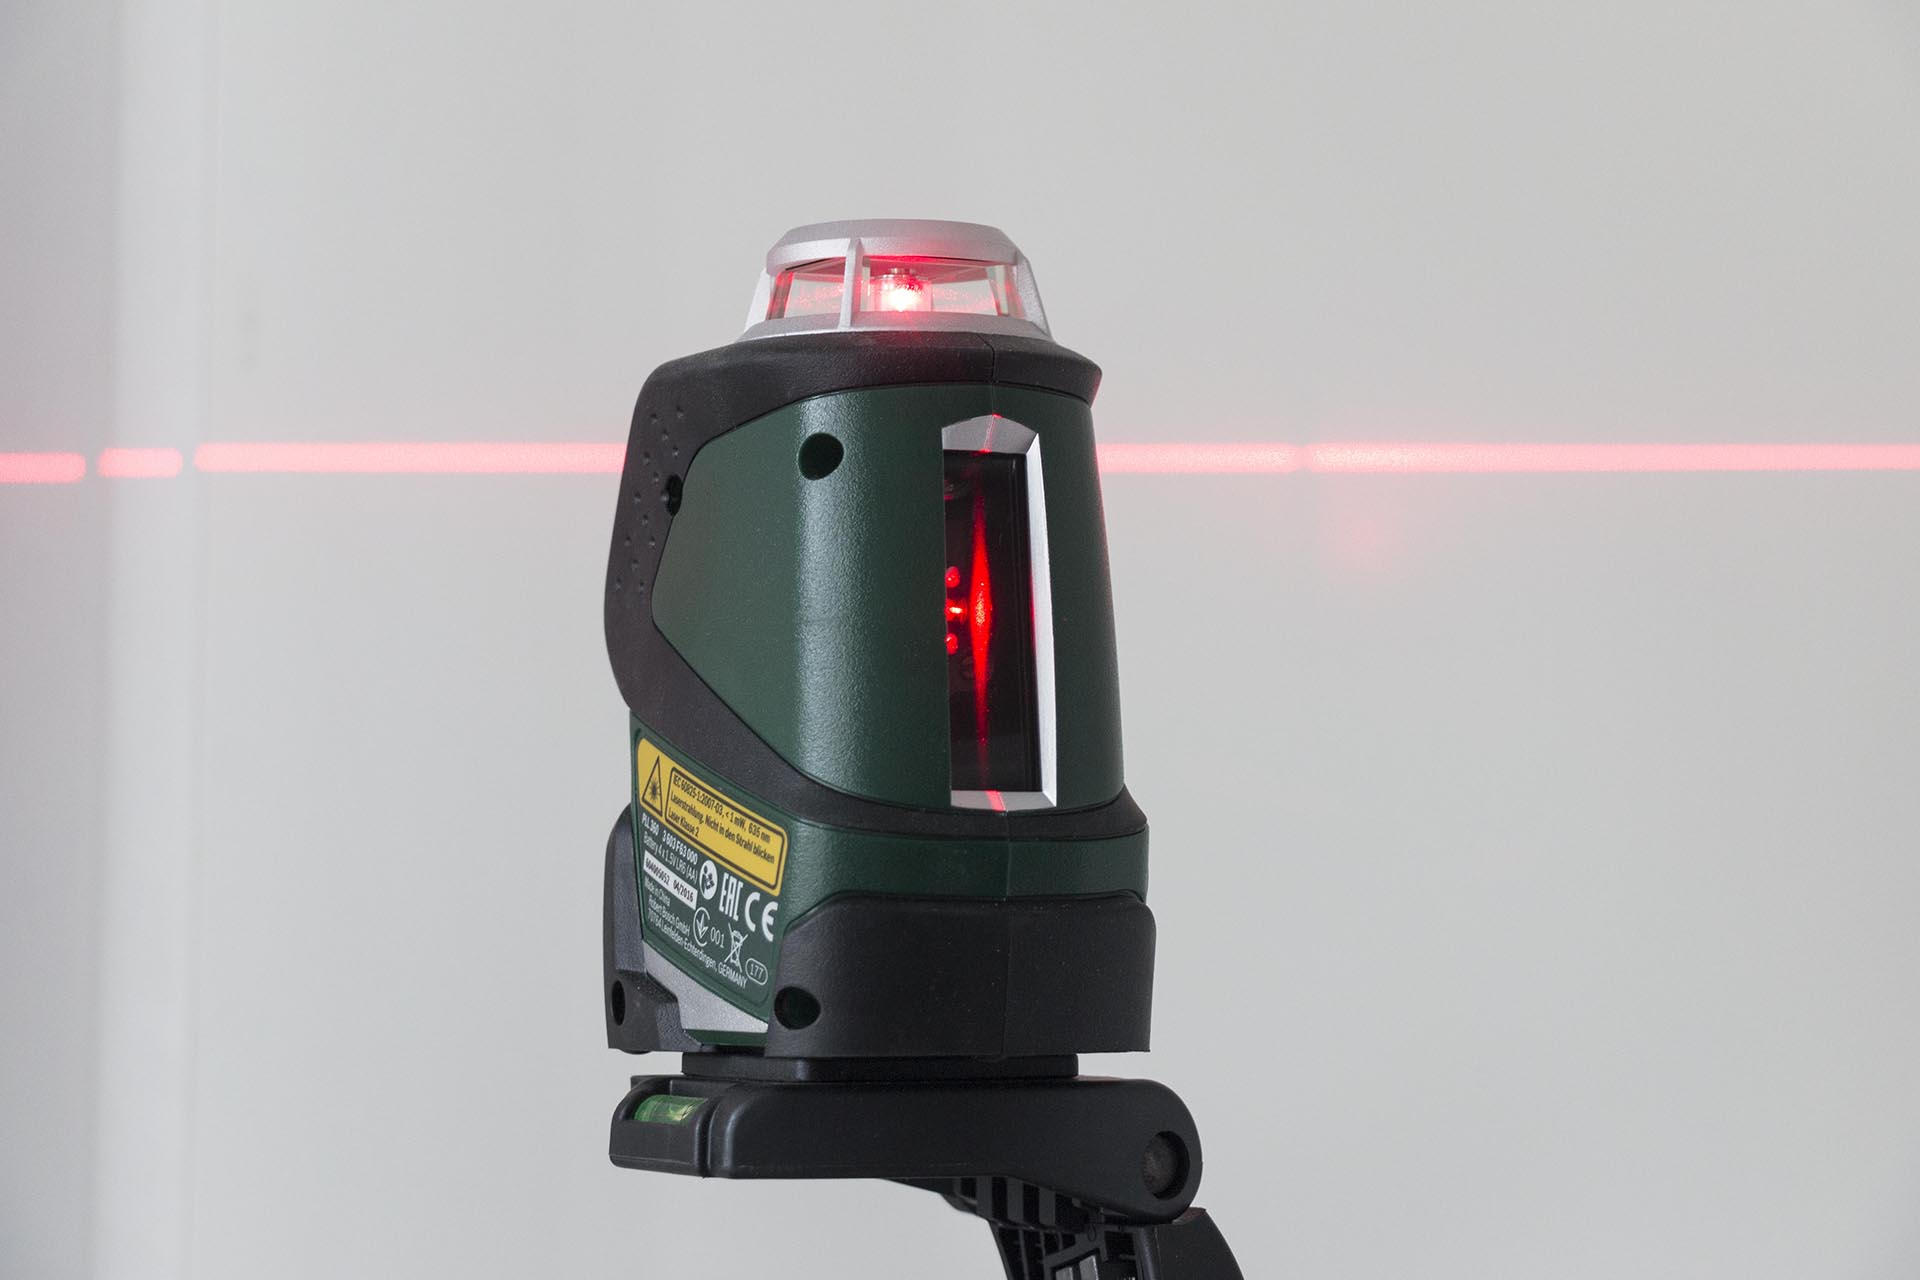 Waterpas Met Laser Review Bosch Pll 360 Kruislijnlaser And Laserwaterpas